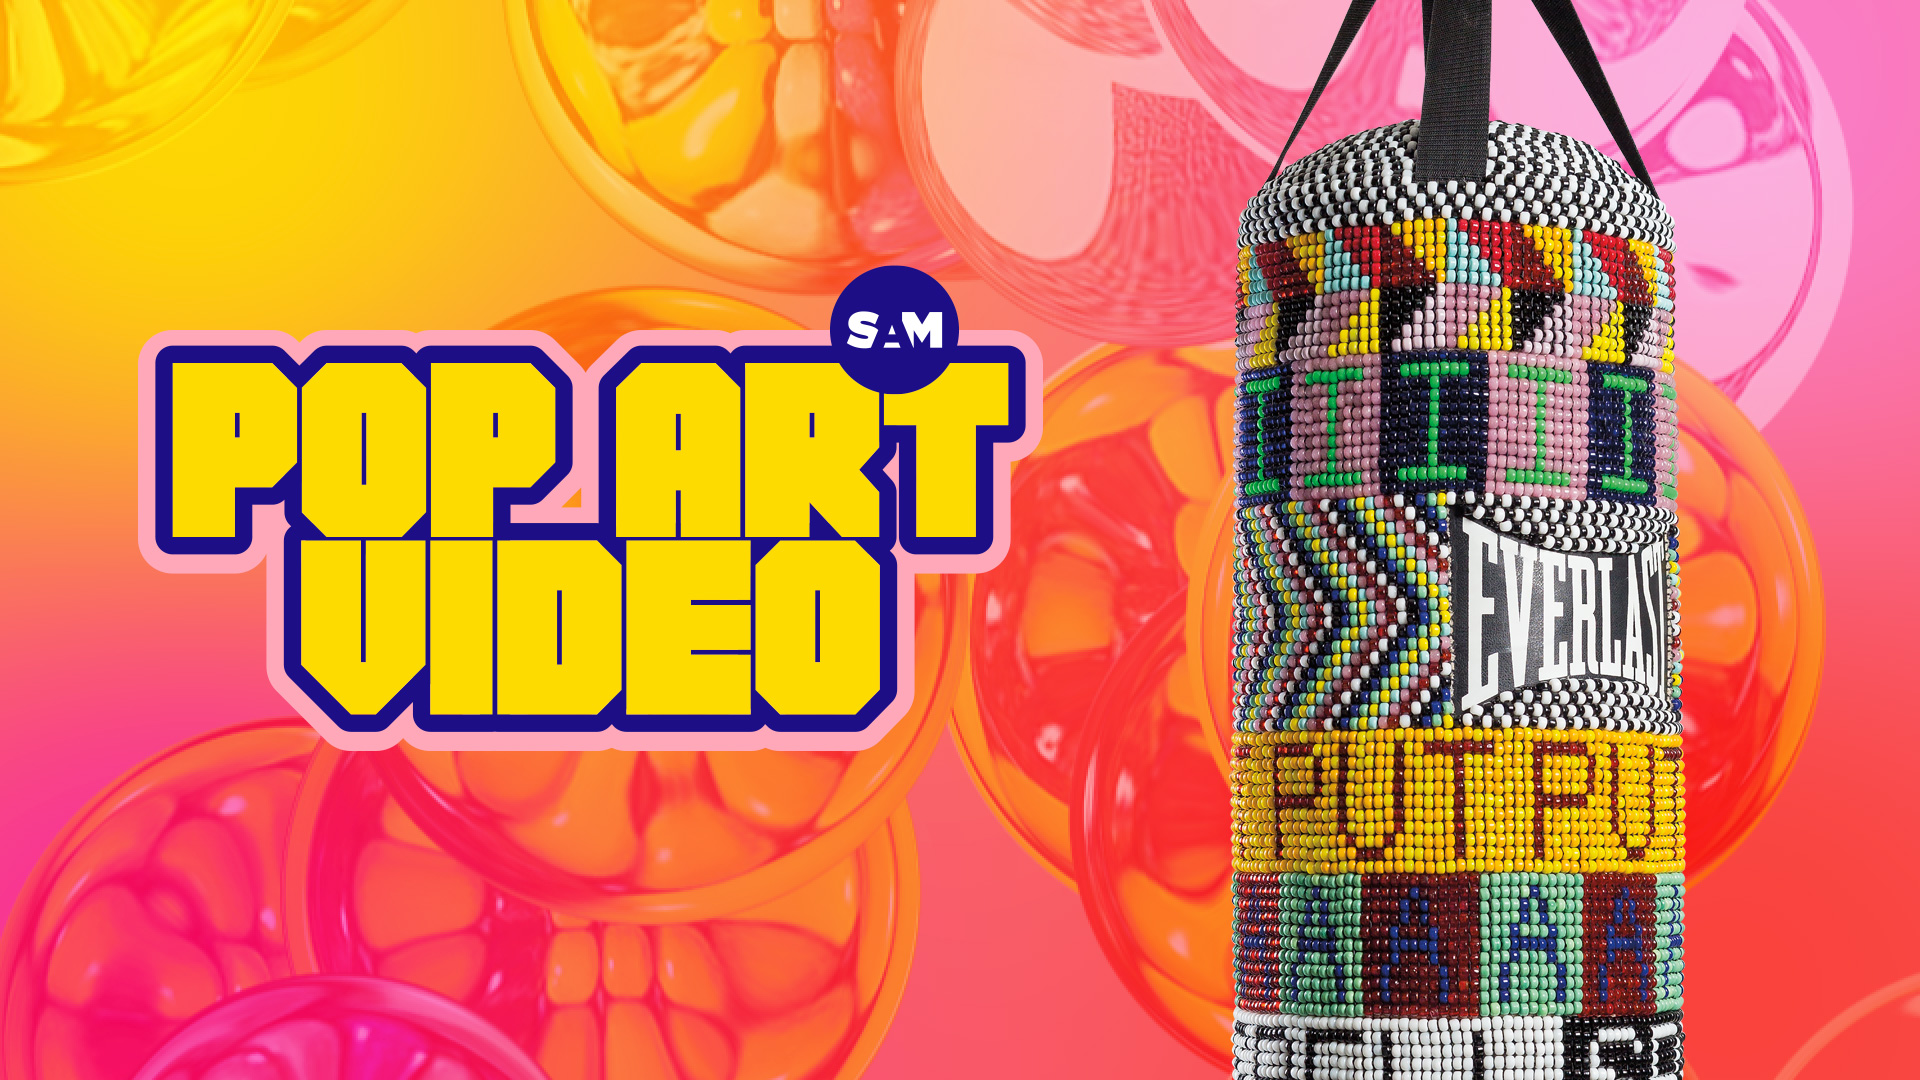 Pop-Art Video: I Put a Spell on You, Jeffrey Gibson